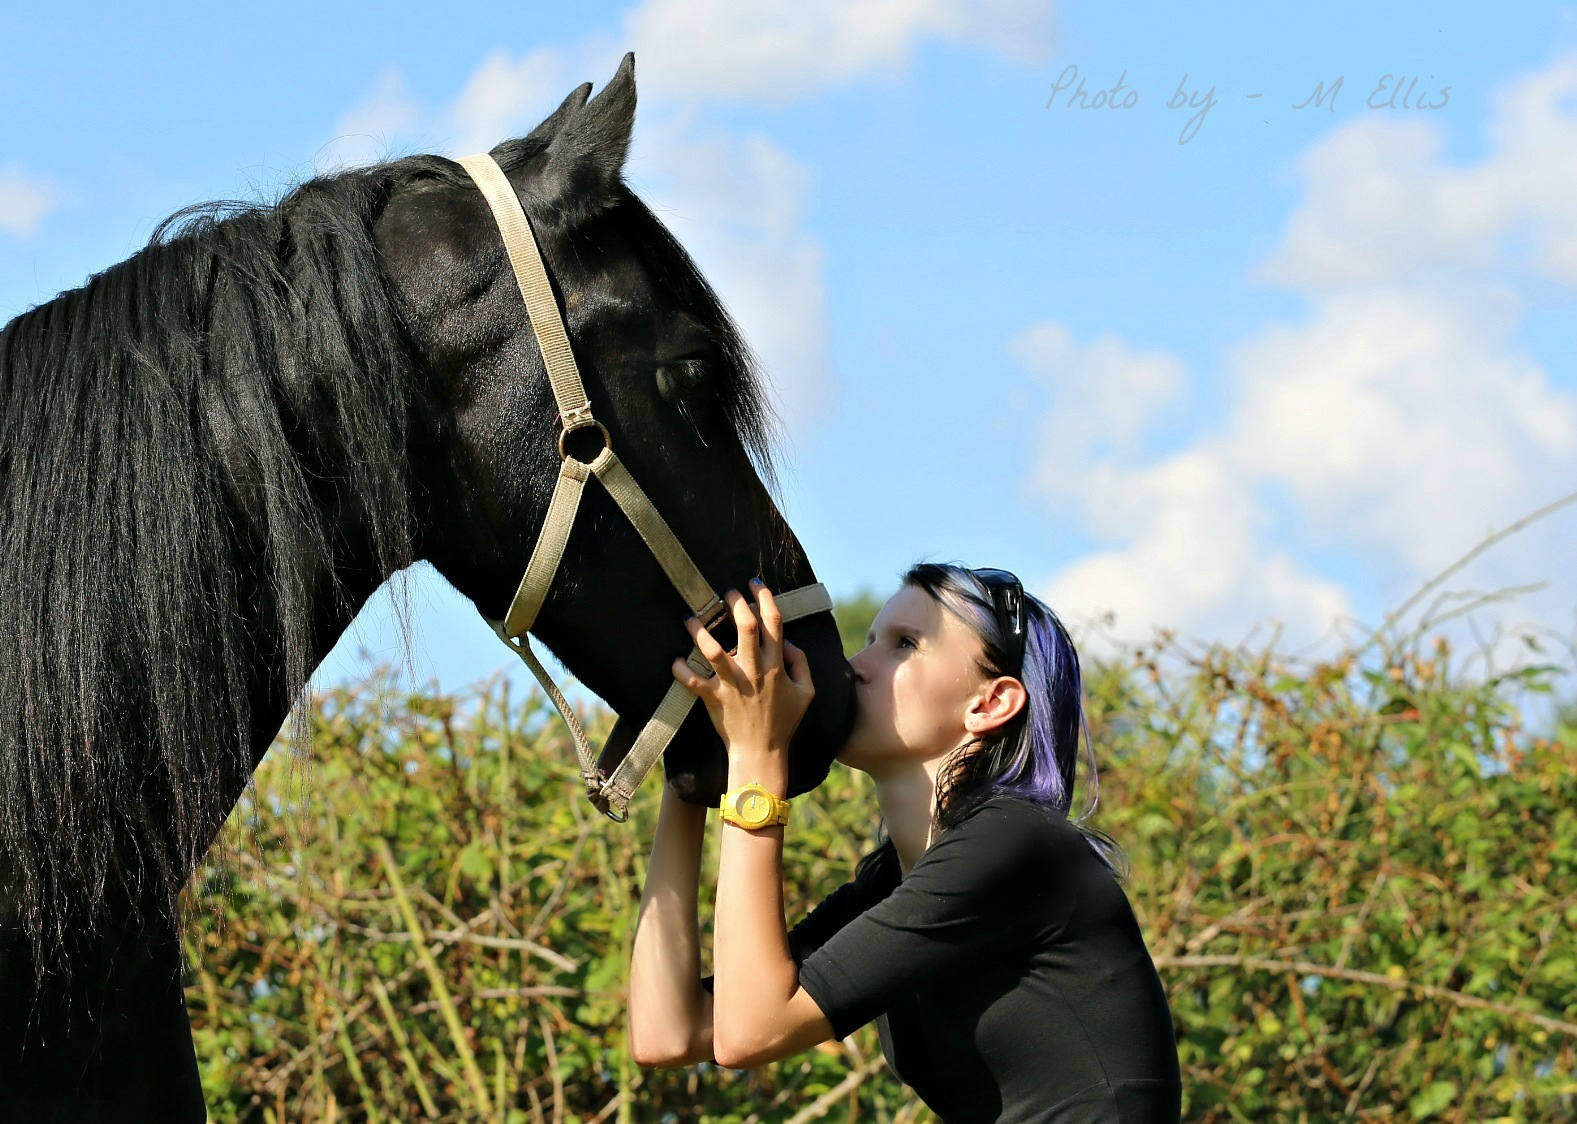 Equine & Human showing passion by Martin Ellis